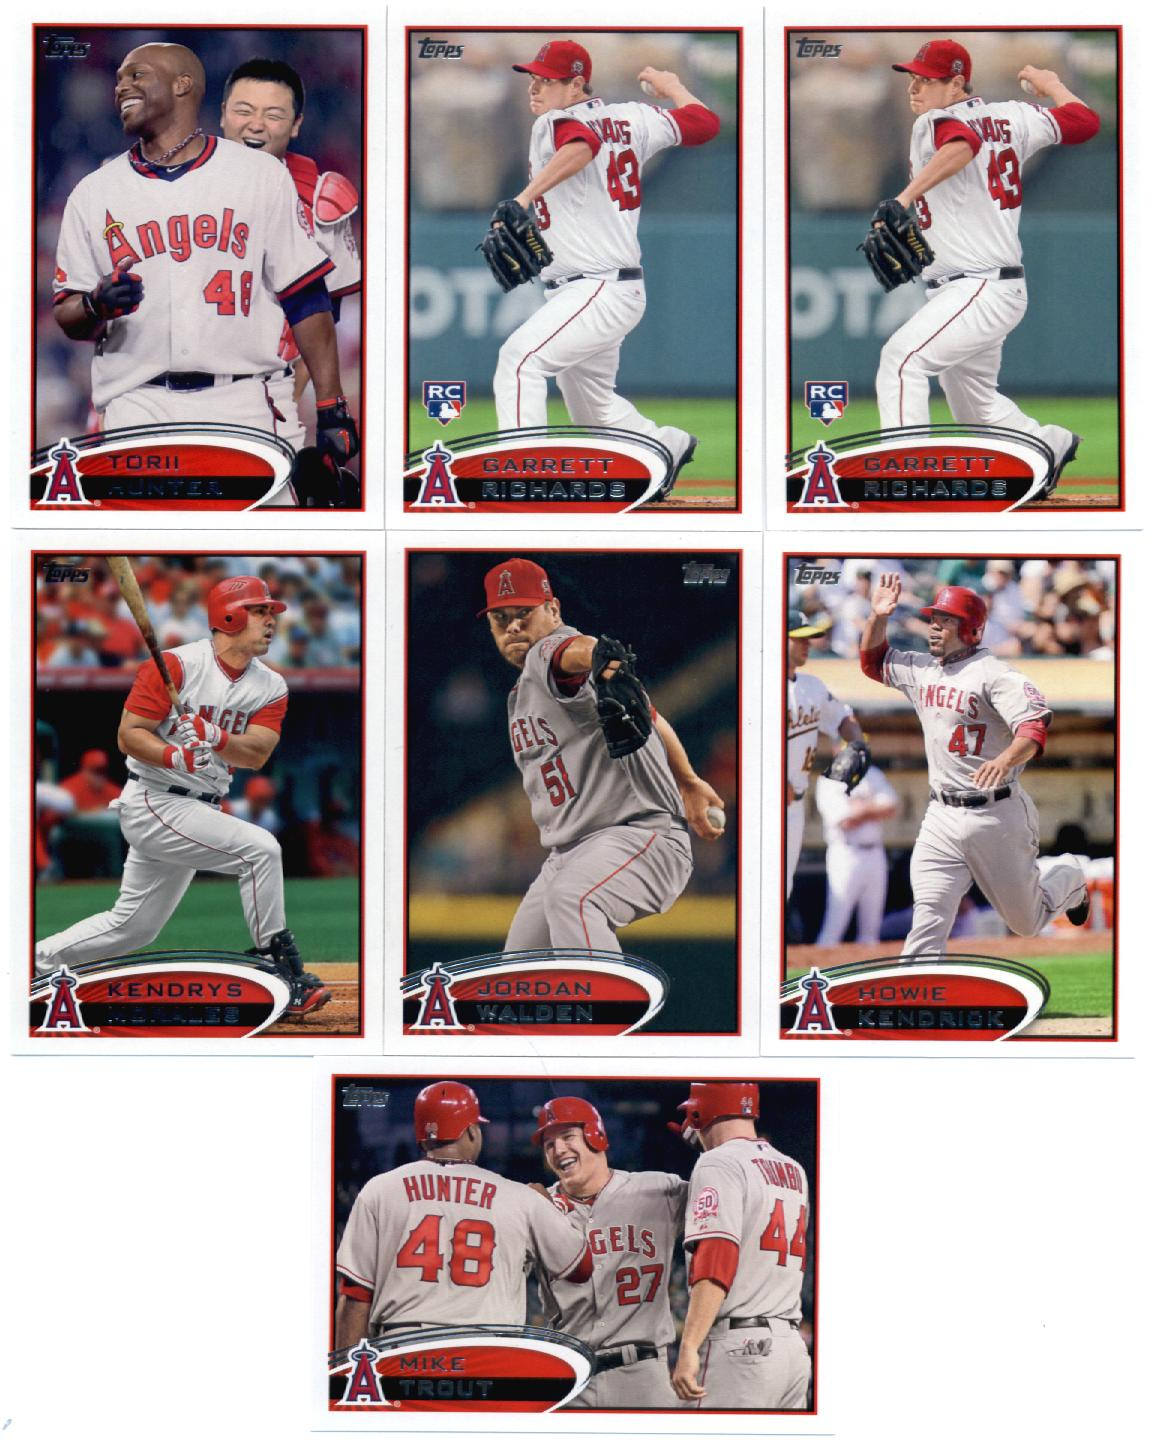 Topps Update 2012 Topps Los Angeles Angels Update Series Team Set -13 Cards- Trout,Iannetta,Weaver,Trumbo,Williams,Wilson,Greinke,Trumbo at Sears.com